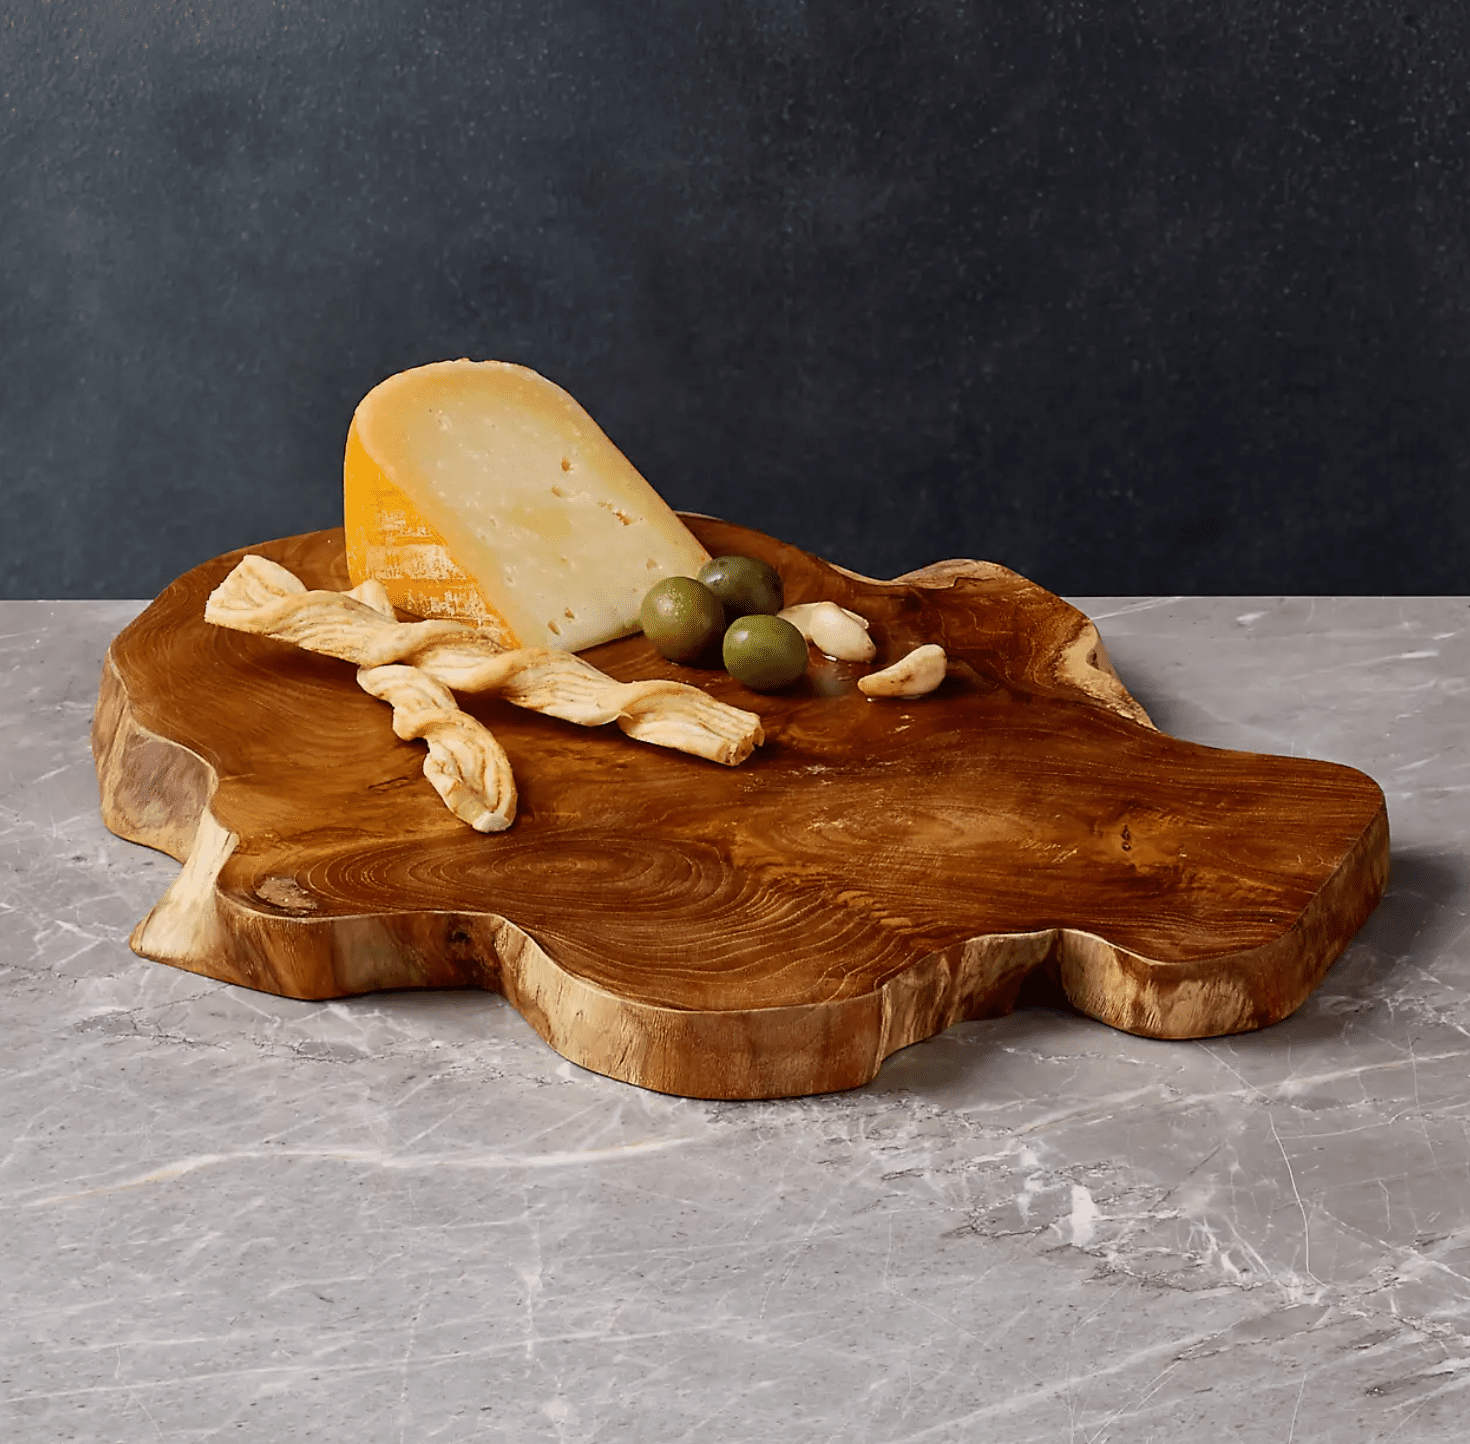 A reclaimed wood cutting board, currently for sale at Crate & Barrel